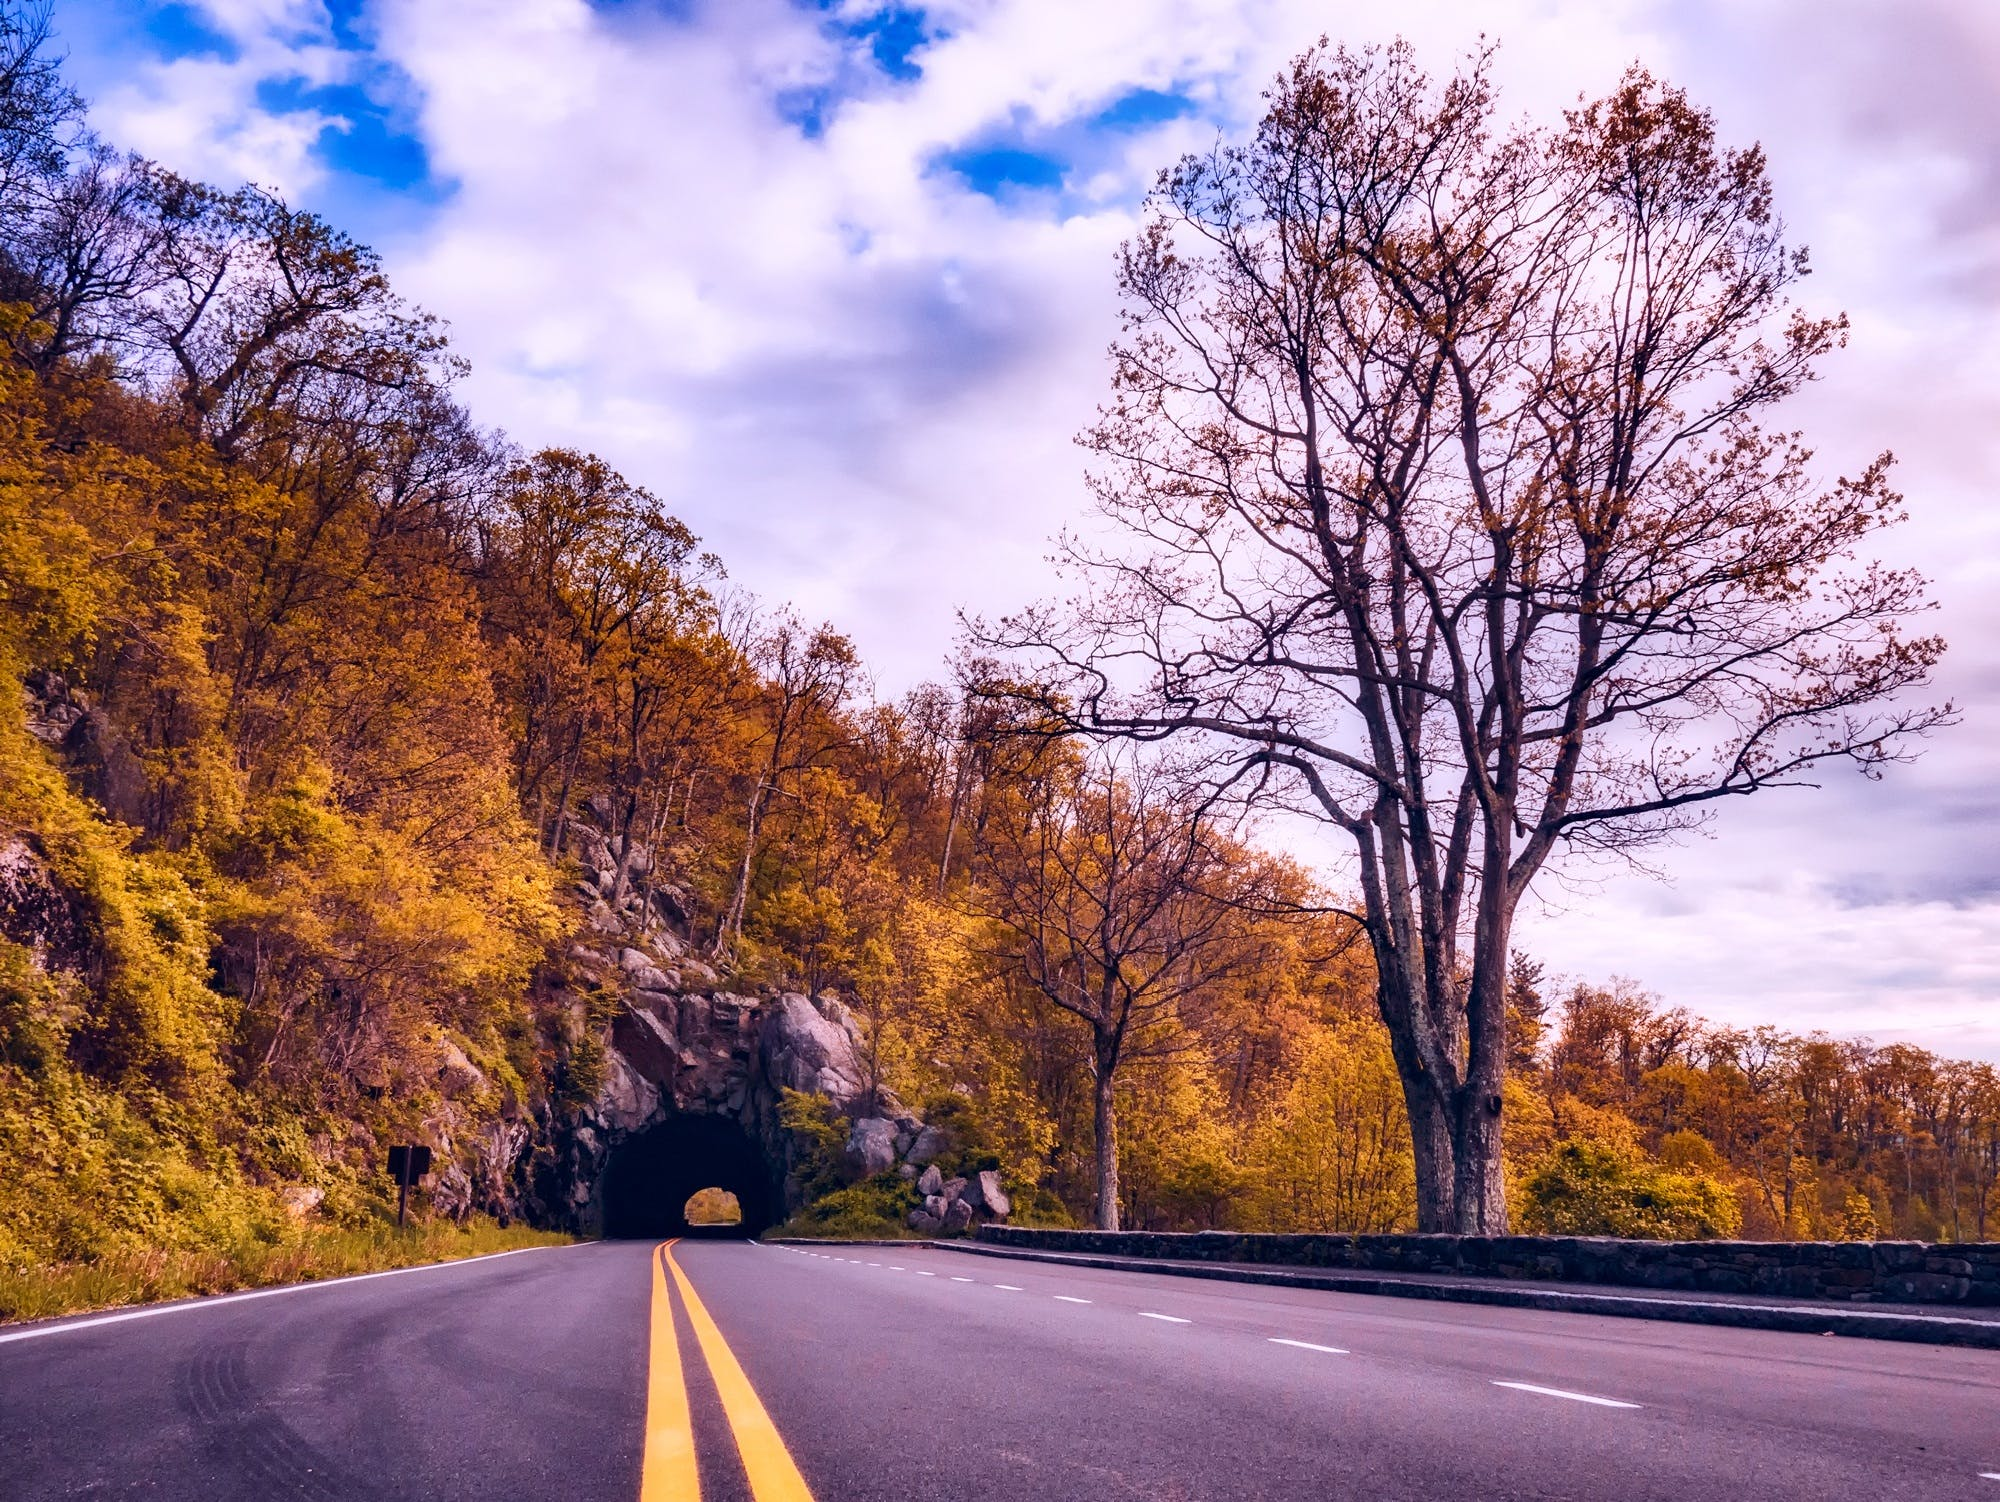 Free stock photo of road, landscape, mountains, nature